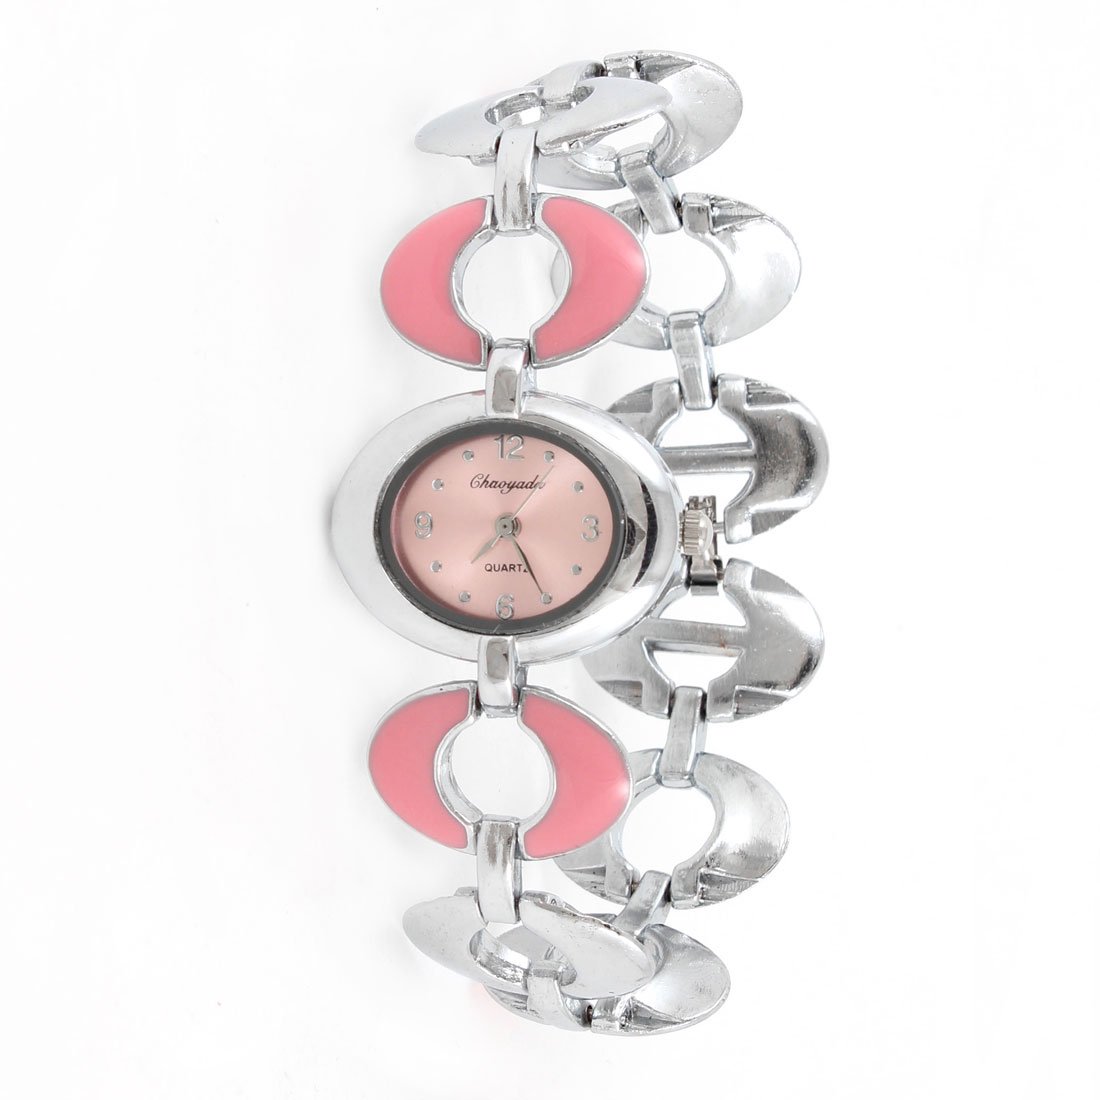 Alloy Pink Silver Tone Oval Shape Watchband Wrist Watch for Ladies